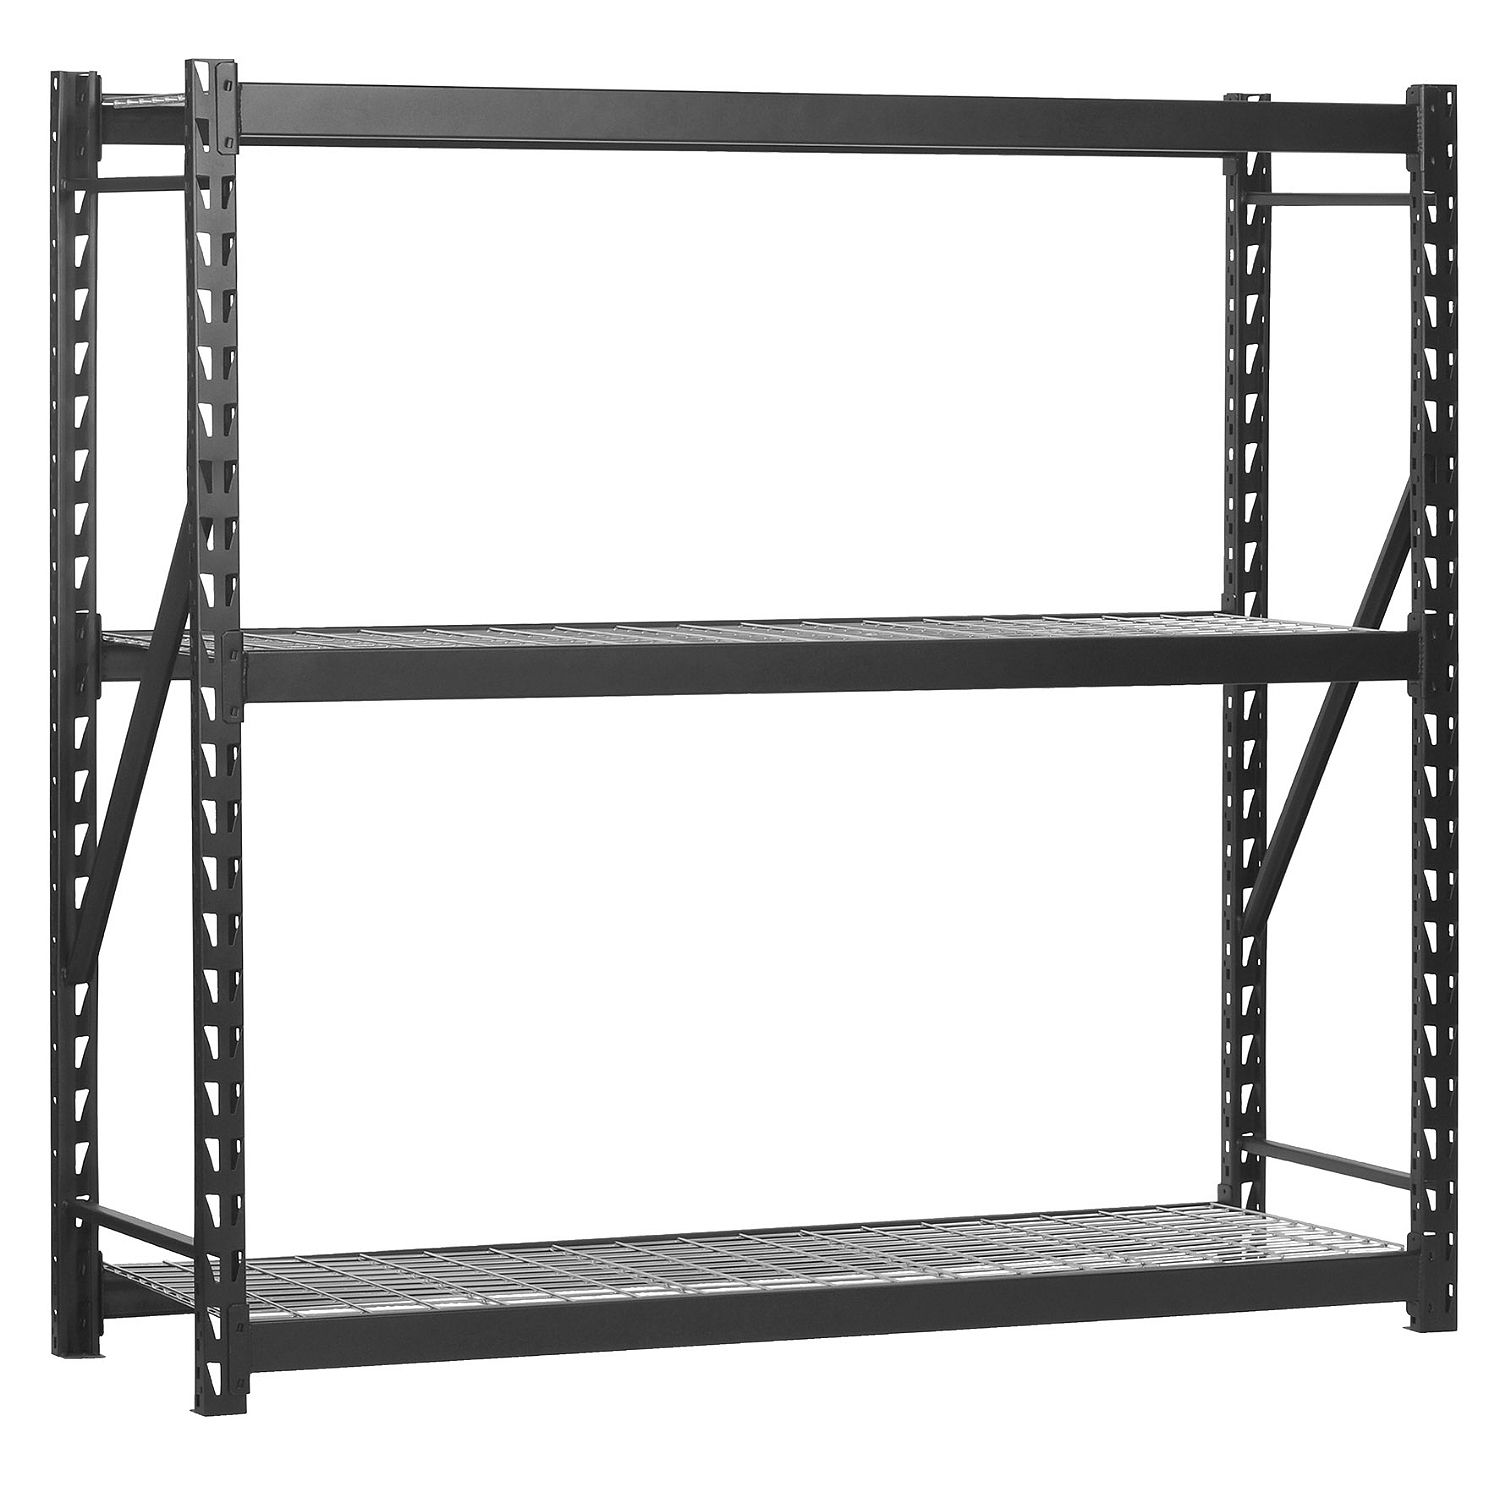 Use Edsal Shelving At Your Garage To Save Your Tools: Chic Heavy Duty Welded Storage Rack In Black By Edsal Shelving For Home Furniture Ideas